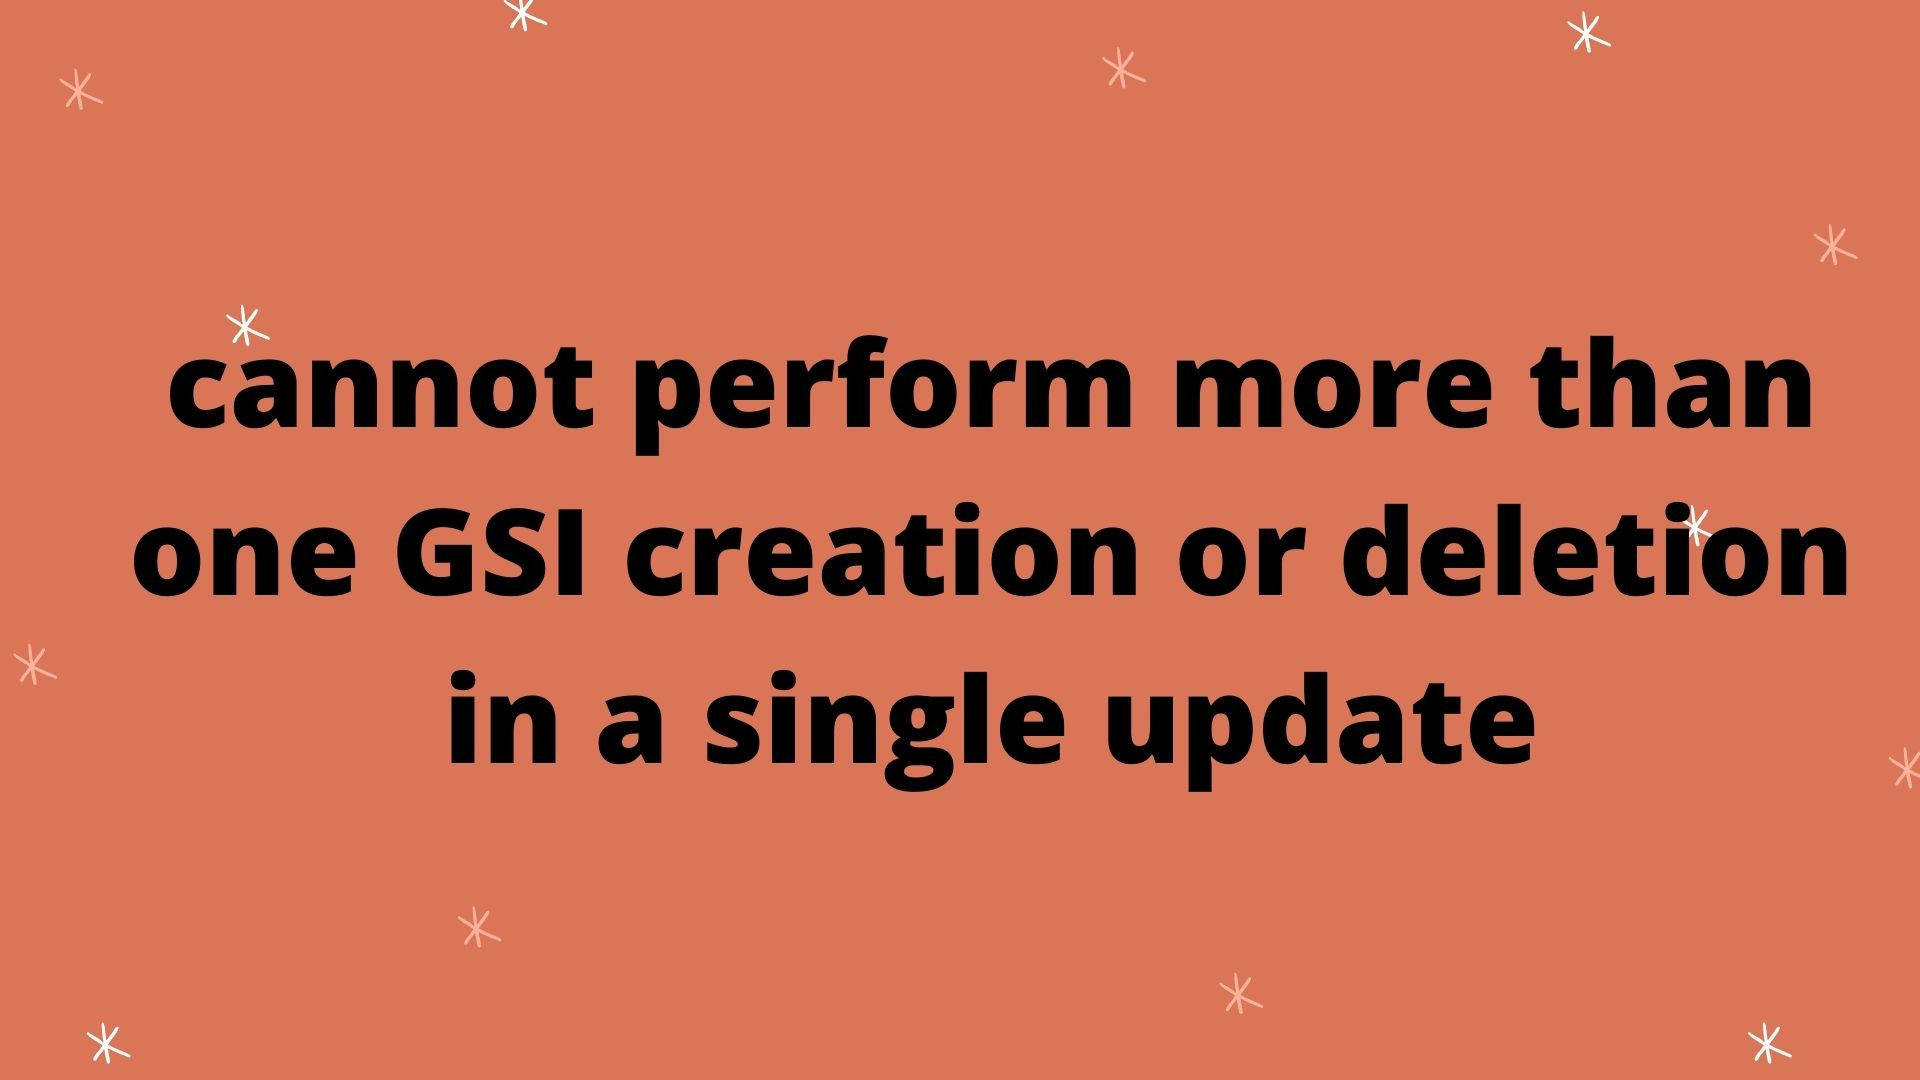 cannot perform more than one GSI creation or deletion in a single update